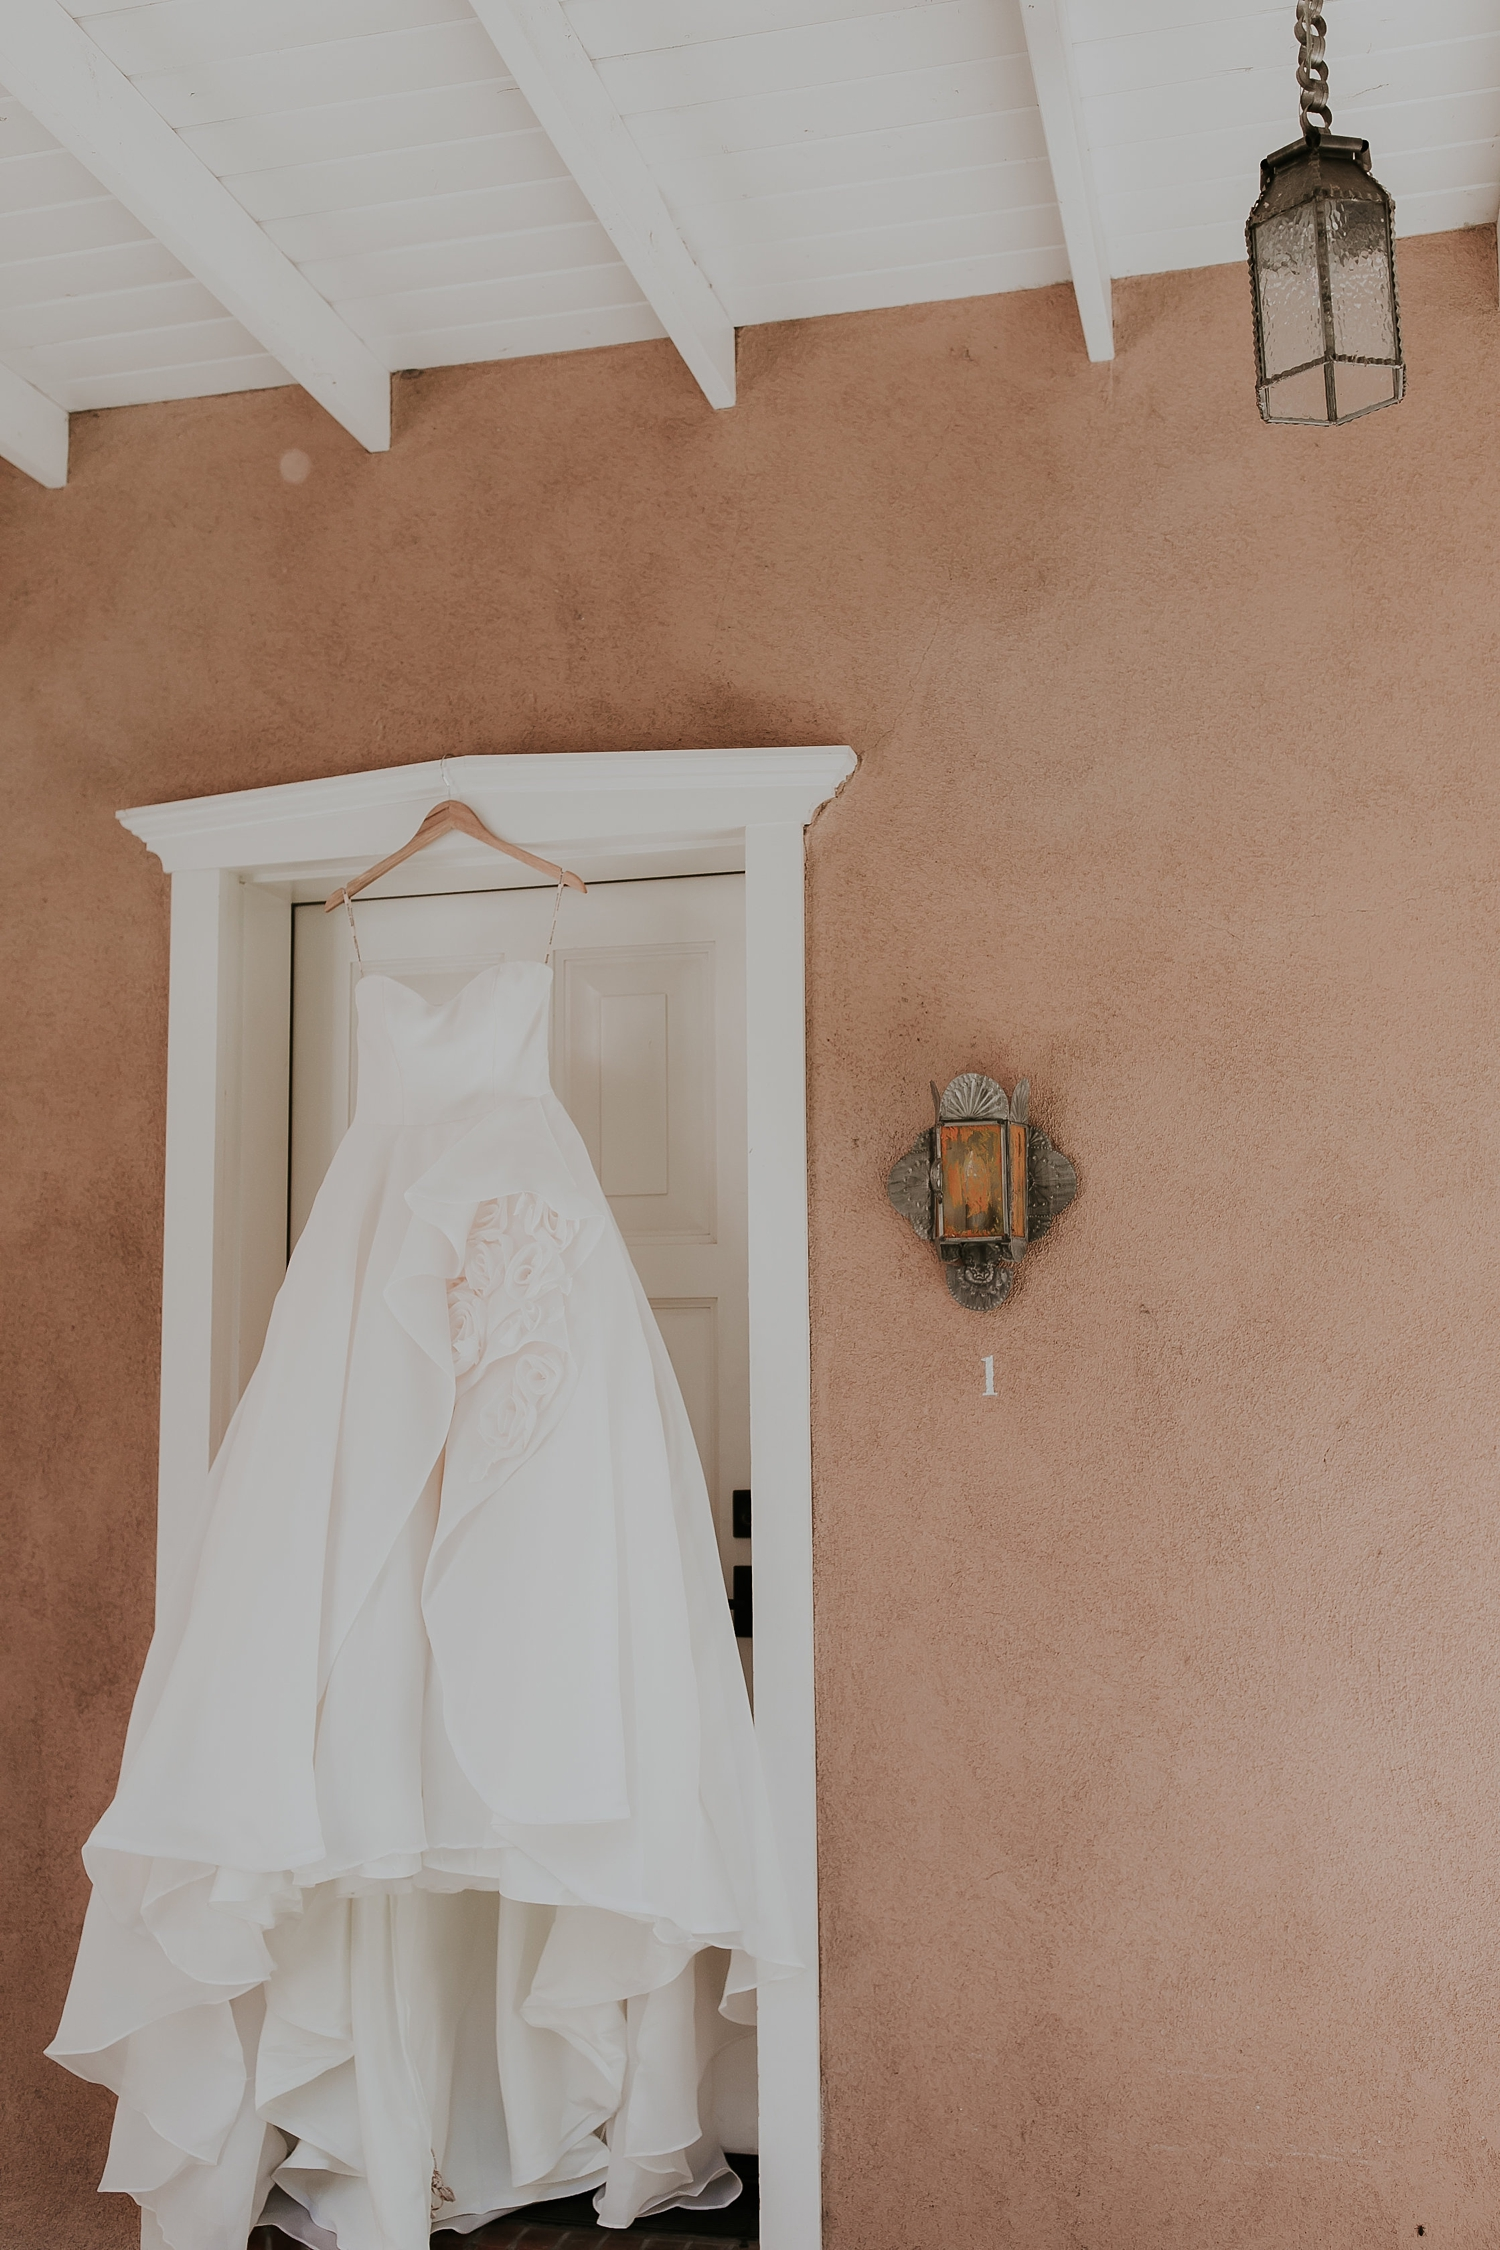 Alicia+lucia+photography+-+albuquerque+wedding+photographer+-+santa+fe+wedding+photography+-+new+mexico+wedding+photographer+-+los+poblanos+wedding+-+los+poblanos+fall+wedding+-+los+poblanos+october+wedding_0003.jpg